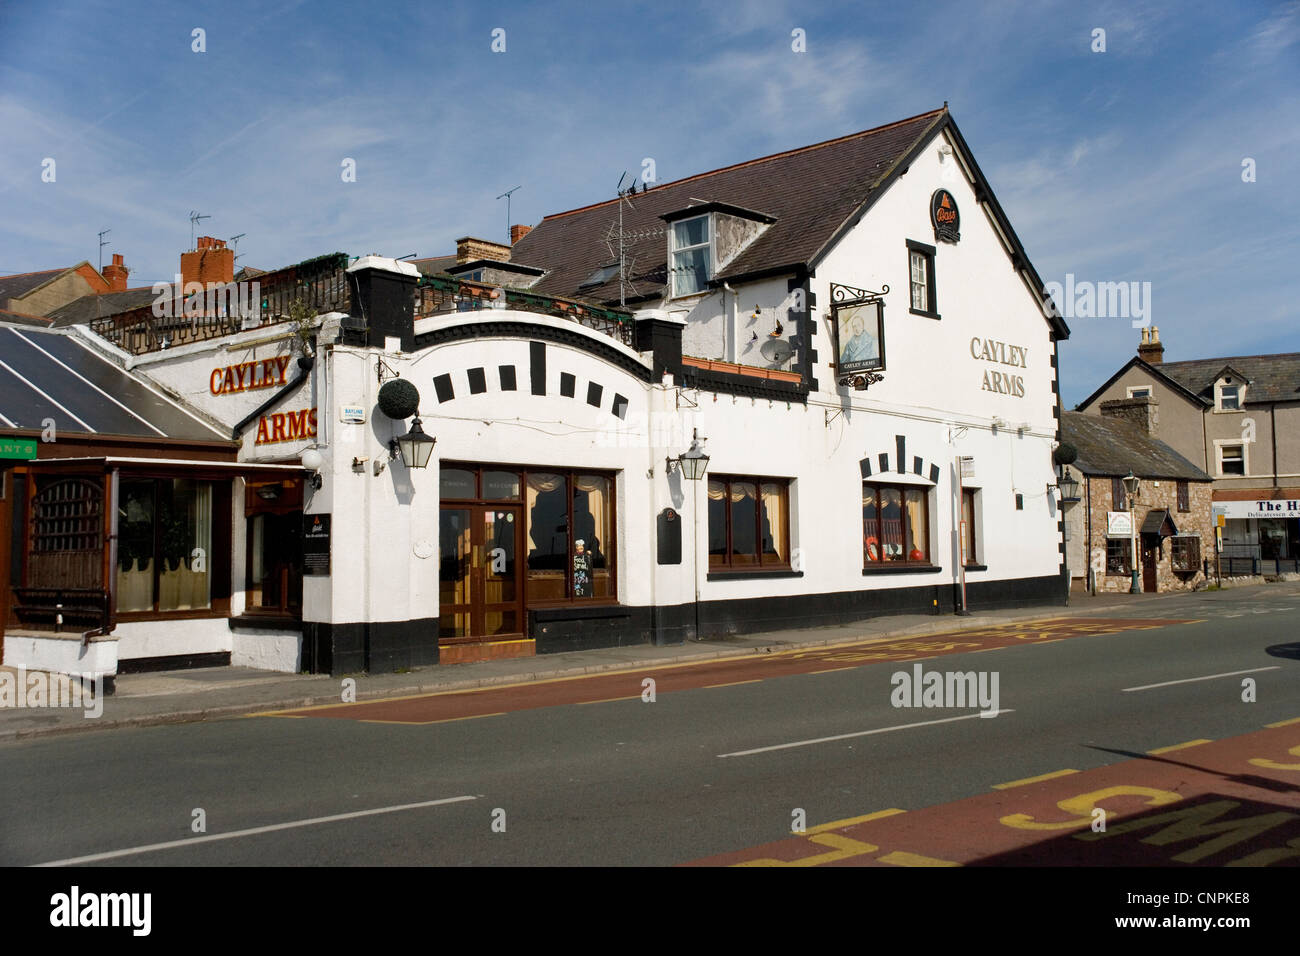 Cayley Arms in Rhos on Sea North Wales - Stock Image